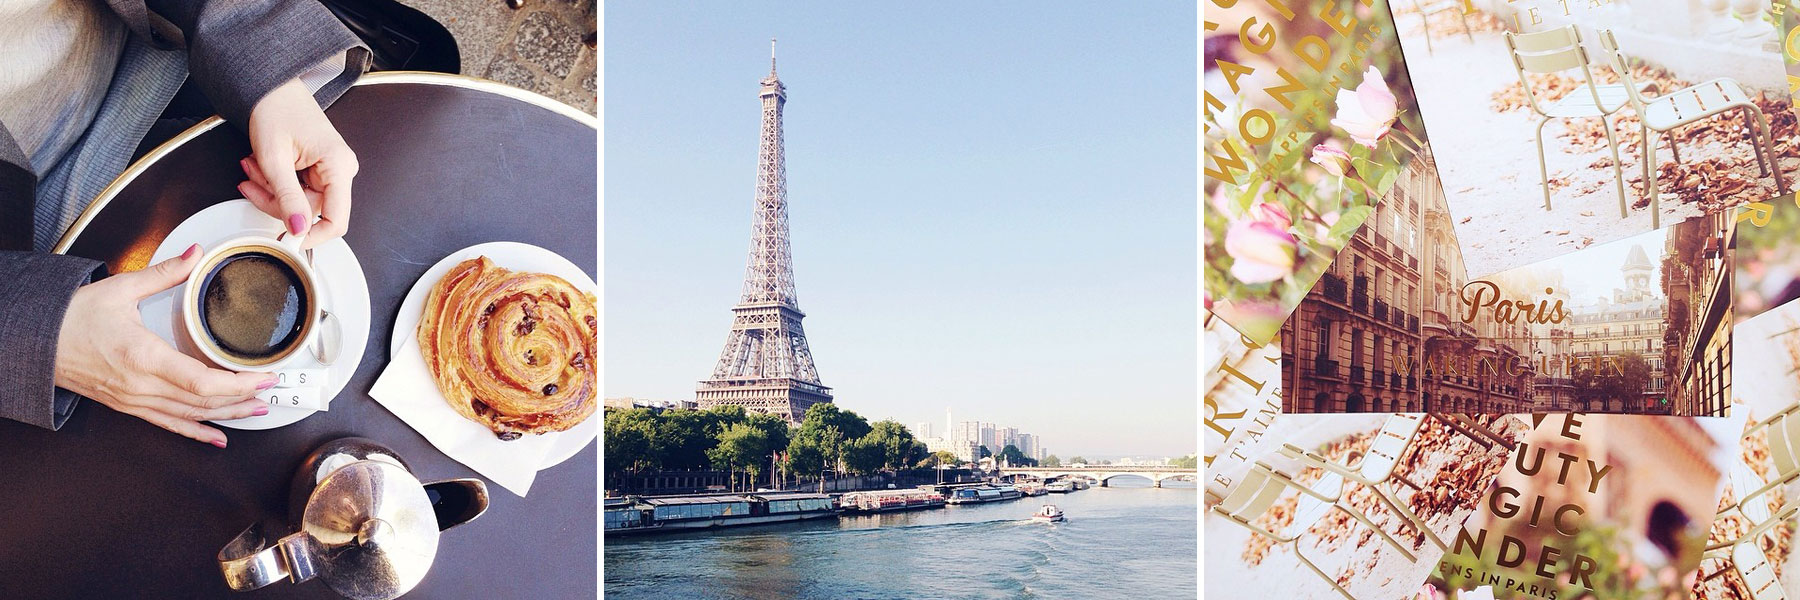 My weekend in Instagram photos by Carin Olsson (Paris in Four Months)